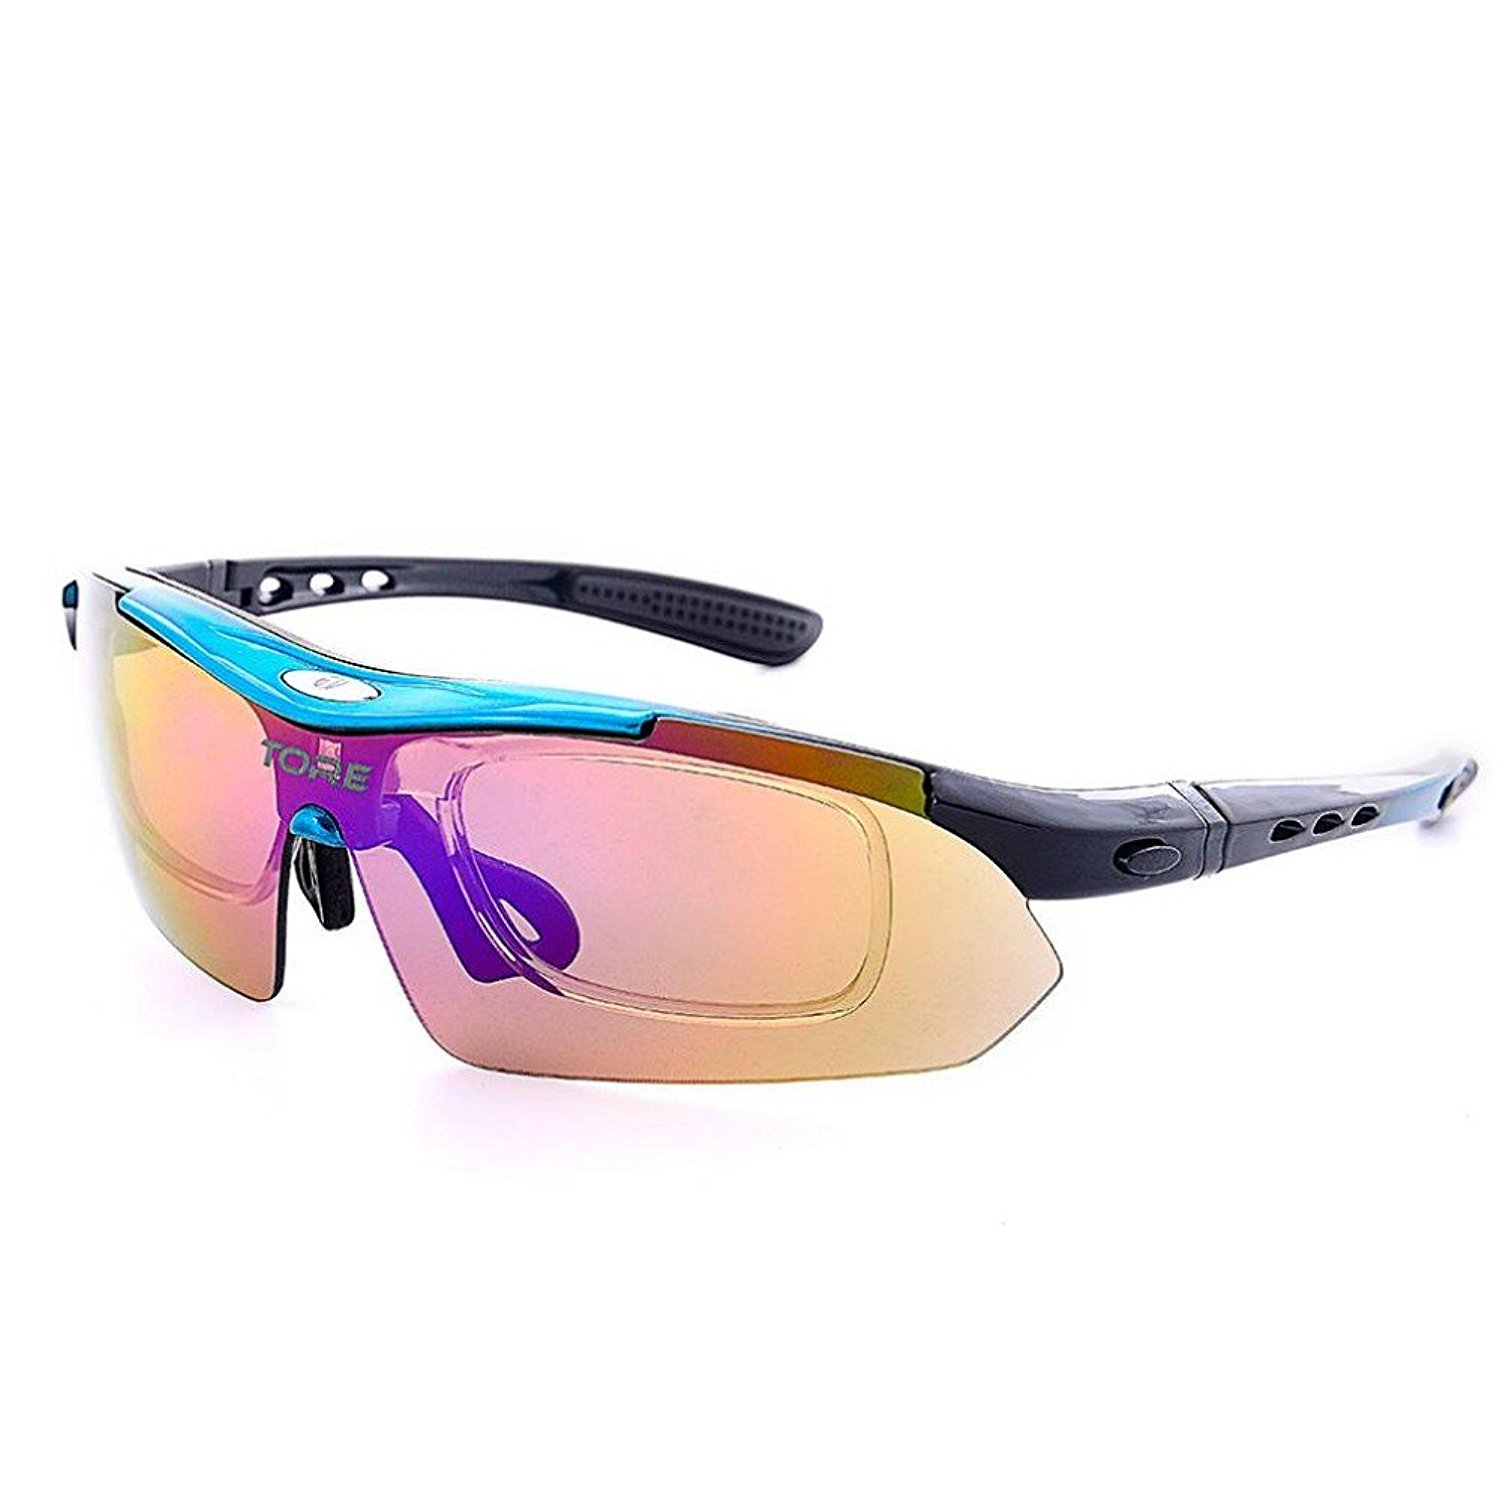 214a3a3713 Get Quotations · Flank Polarized Cycling Glasses